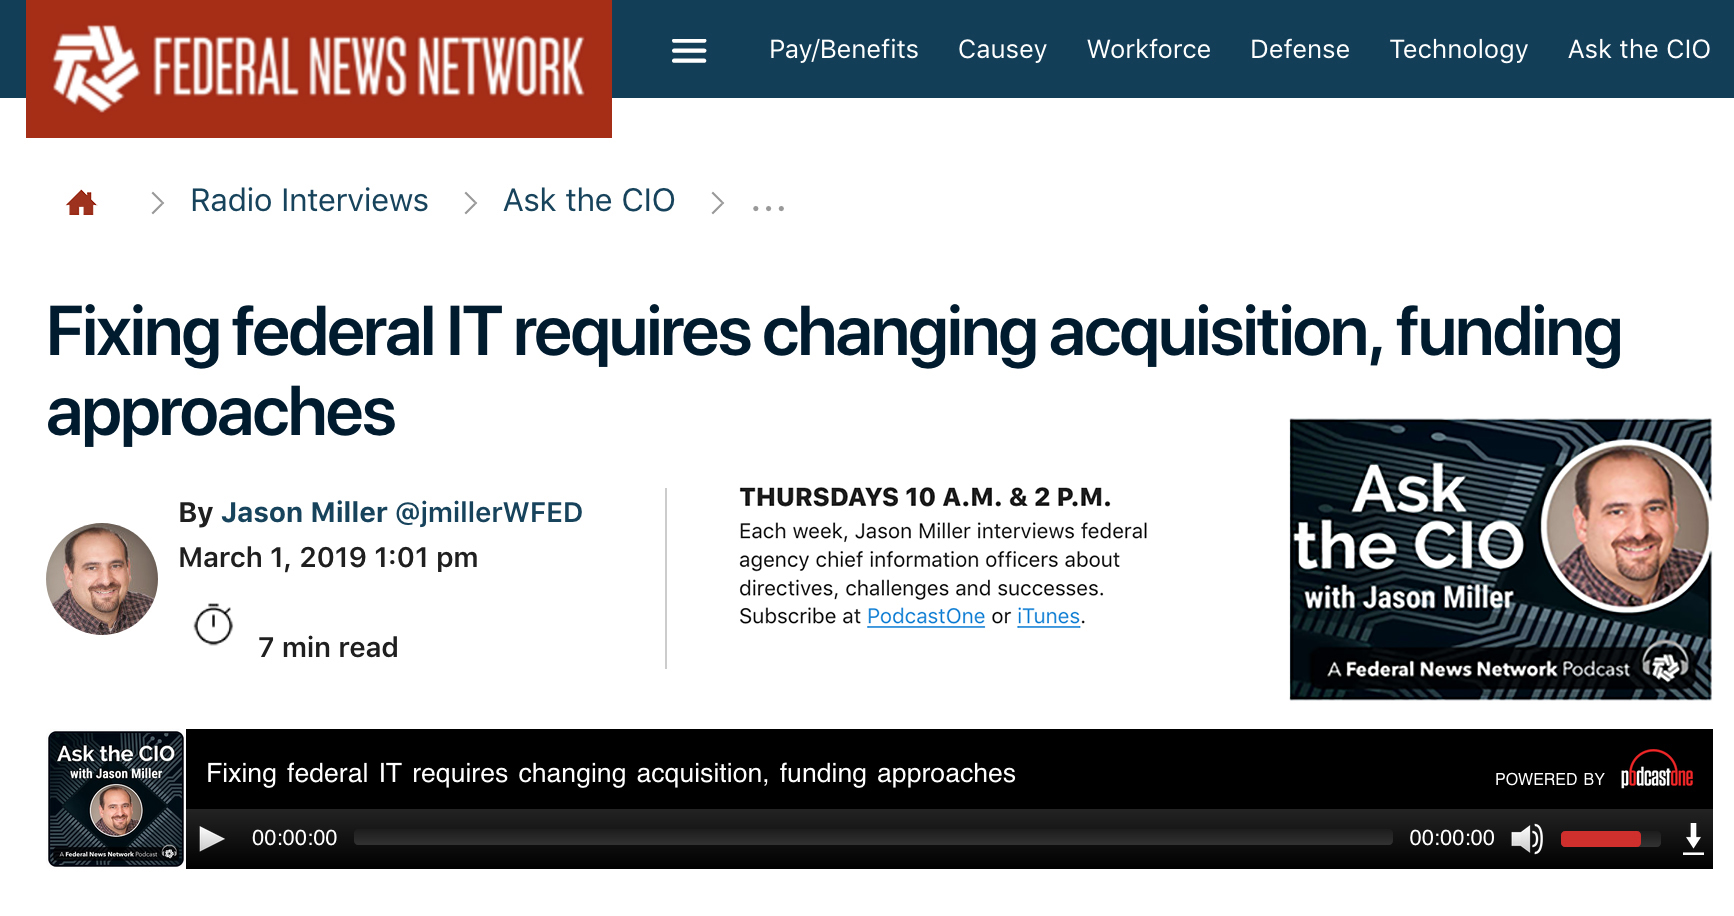 Fixing federal IT requires changing acquisition, funding approaches